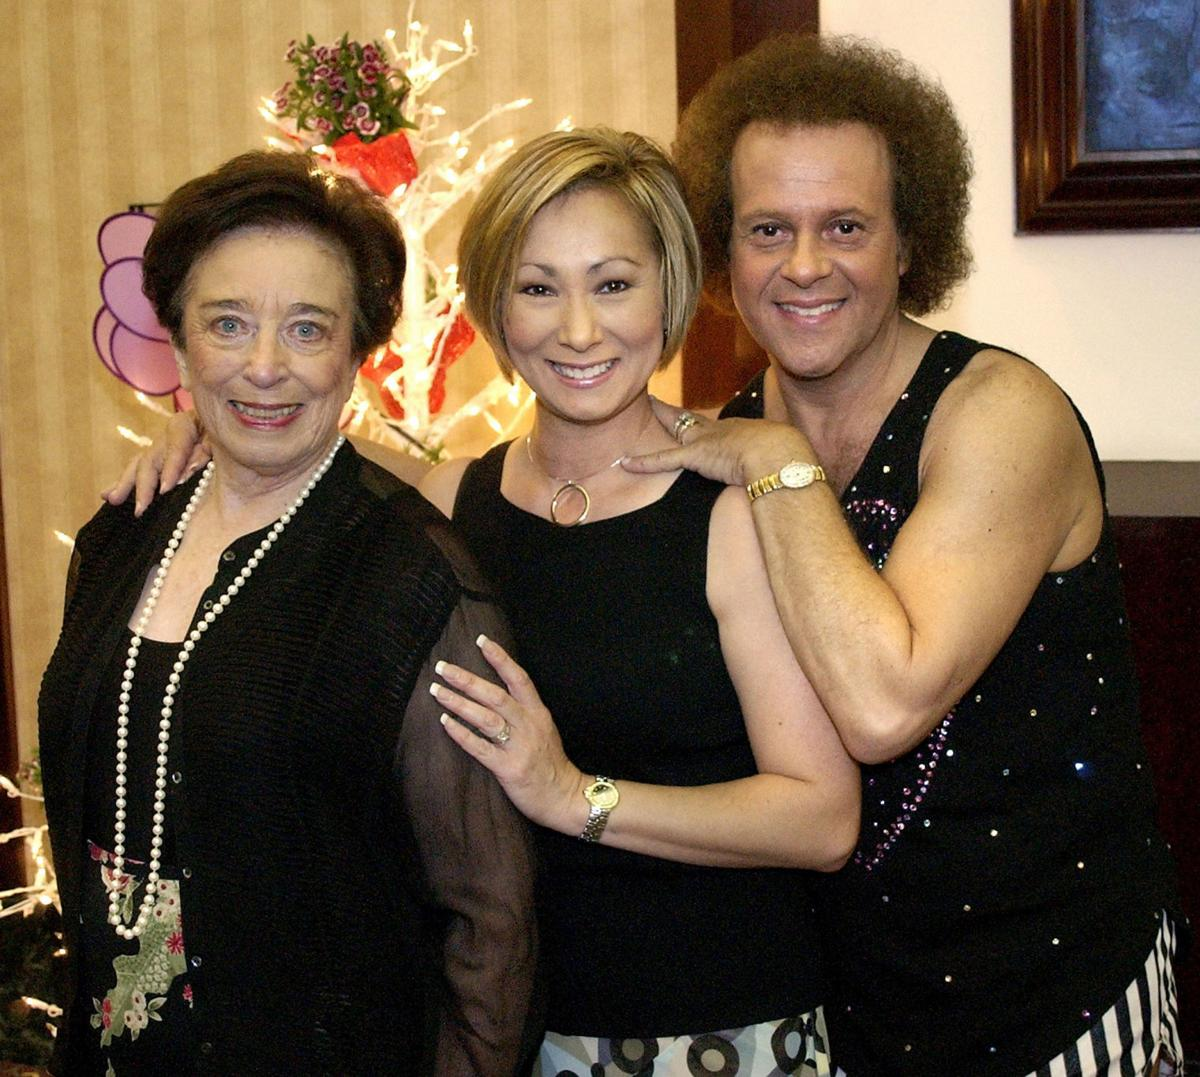 Private eye charged with spying on Richard Simmons: report